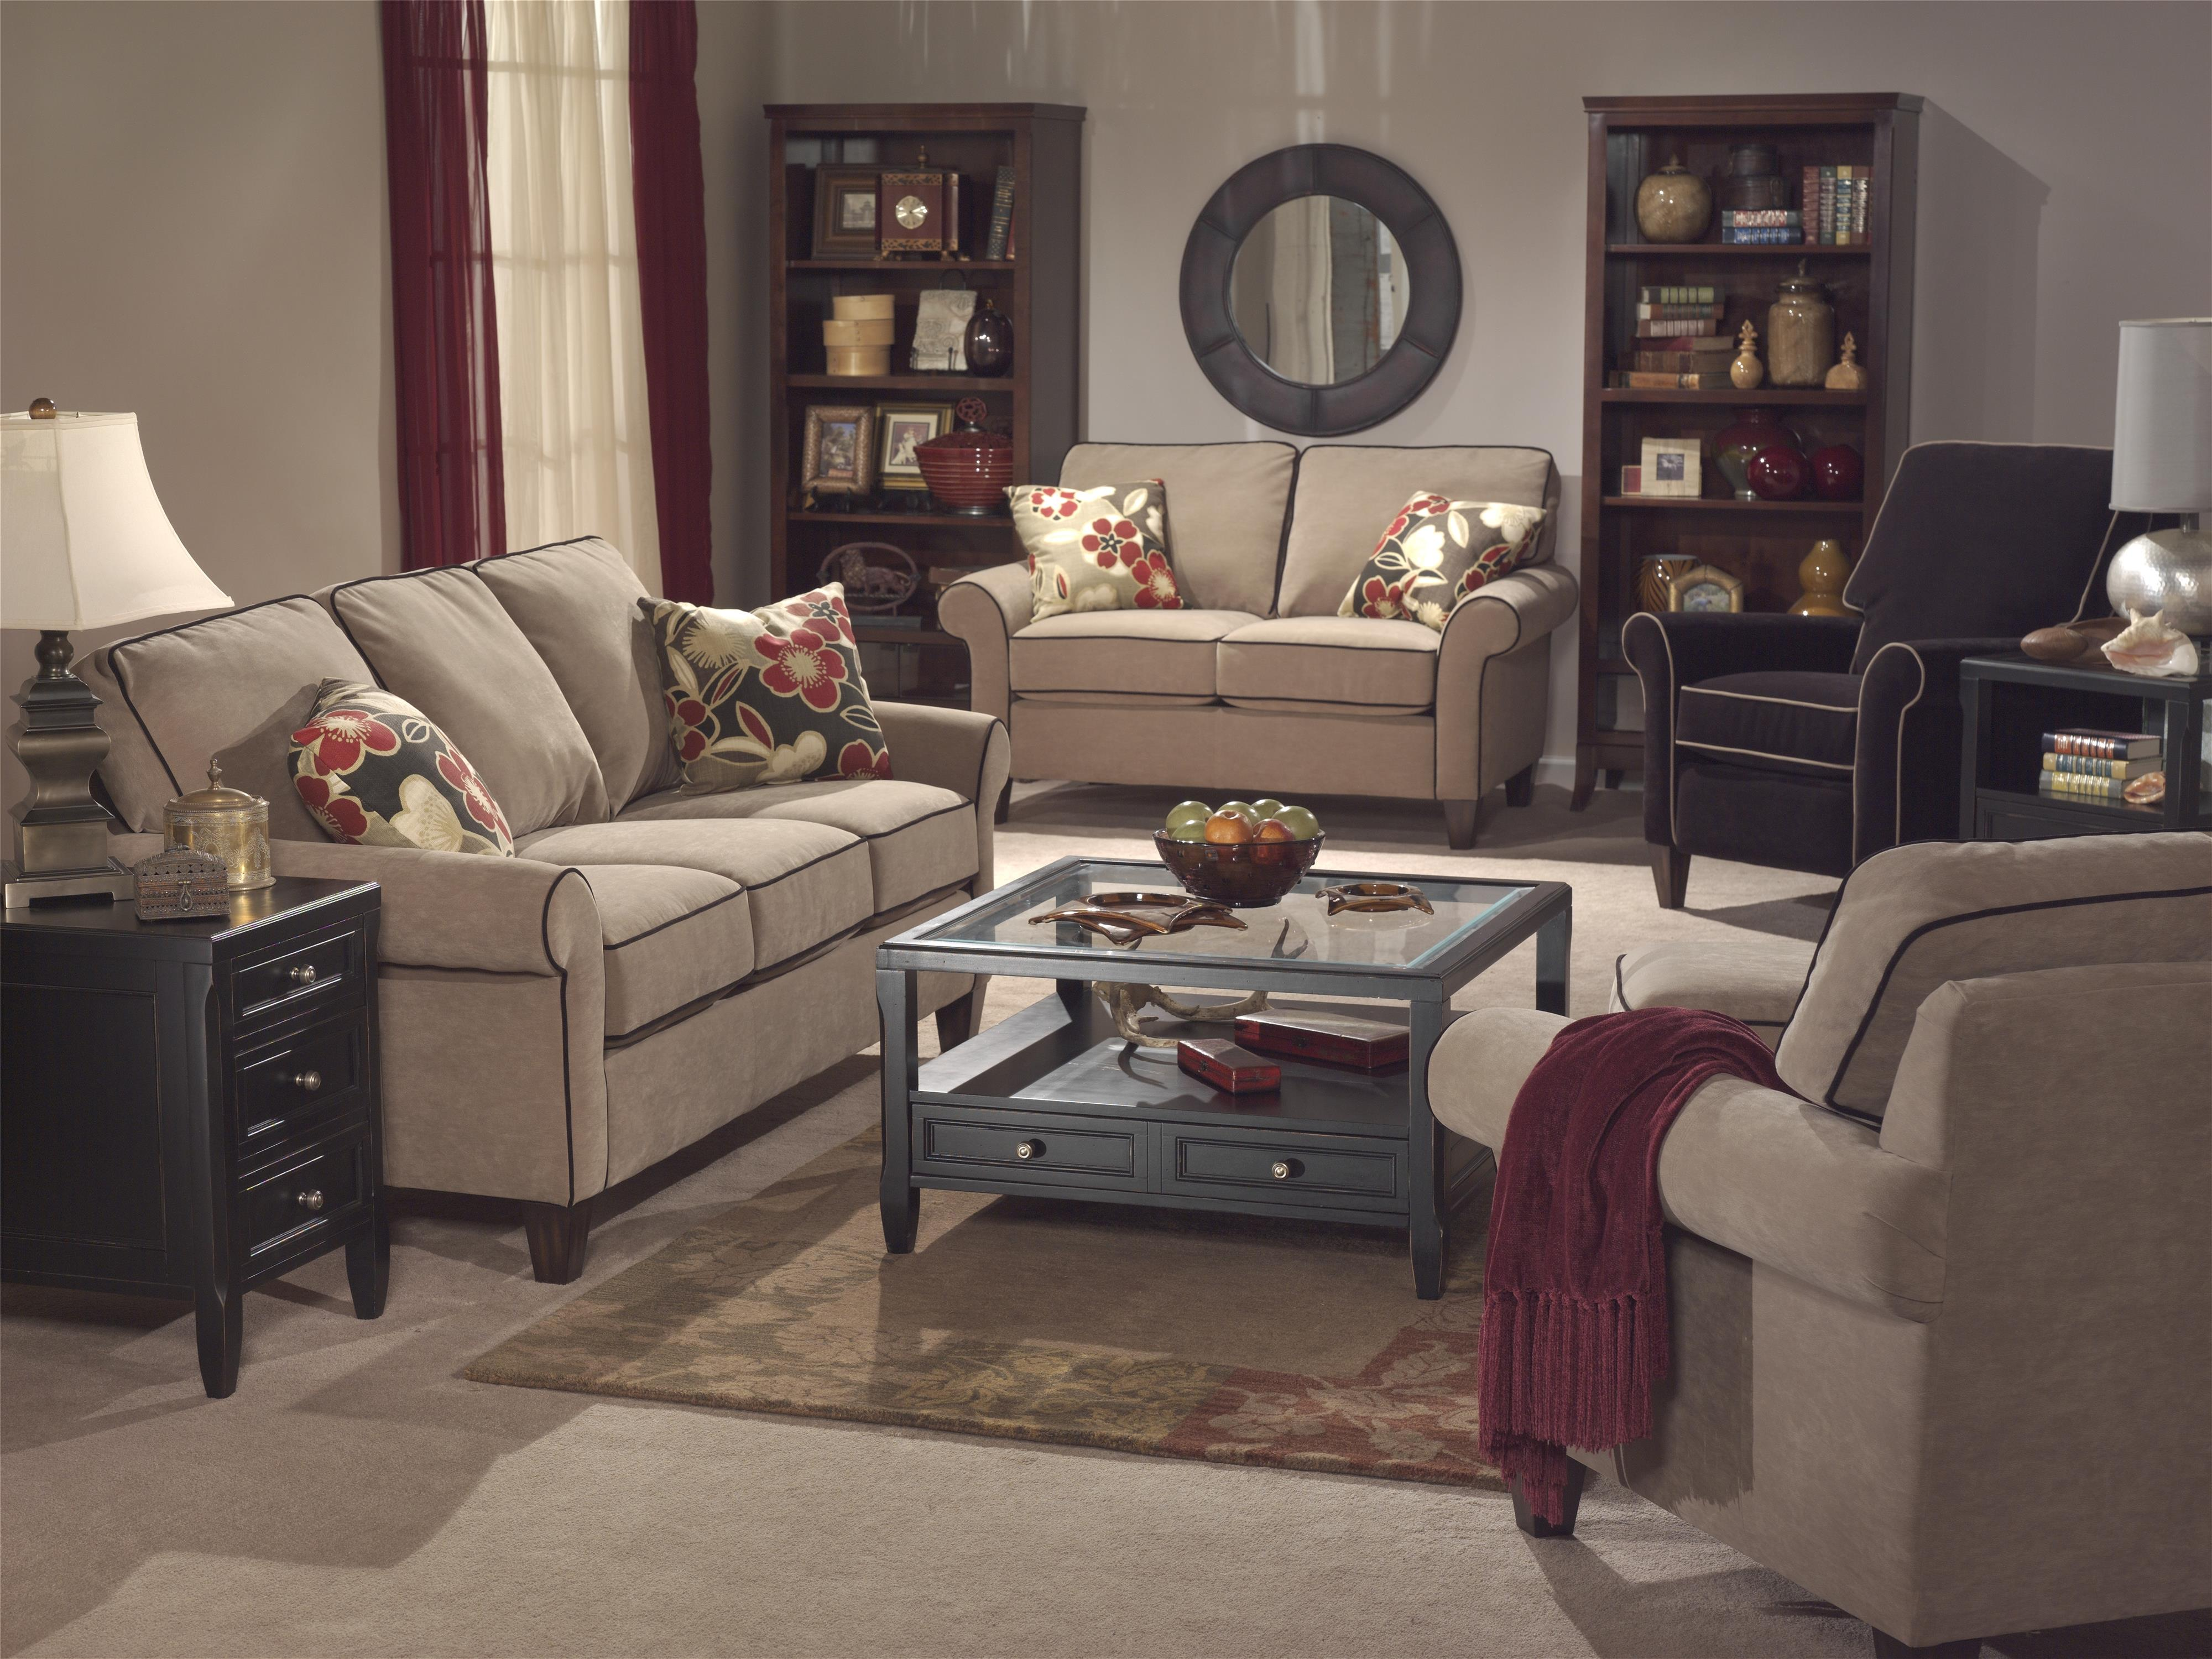 worcester piece cuddler right sofa item patina ma ri sectional couch new couches lsg and providence rotmans collections small boston with england furniture